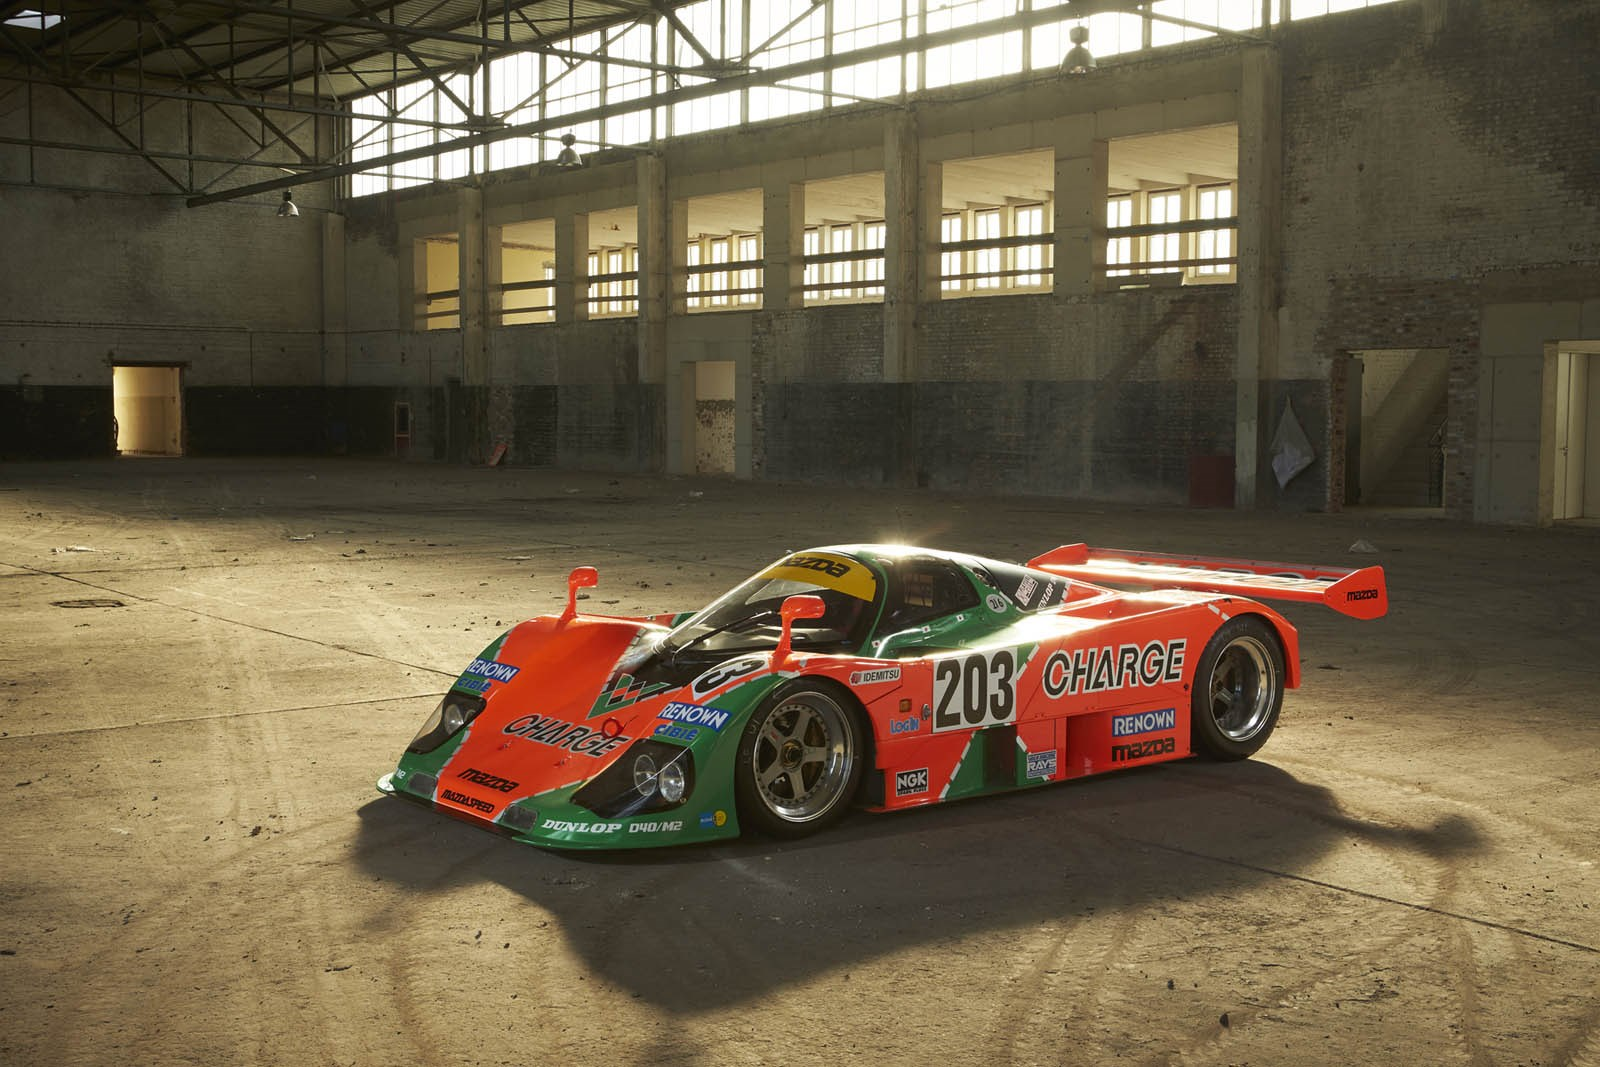 A Japanese Le Mans hero is now for sale - Classic cars - Driven